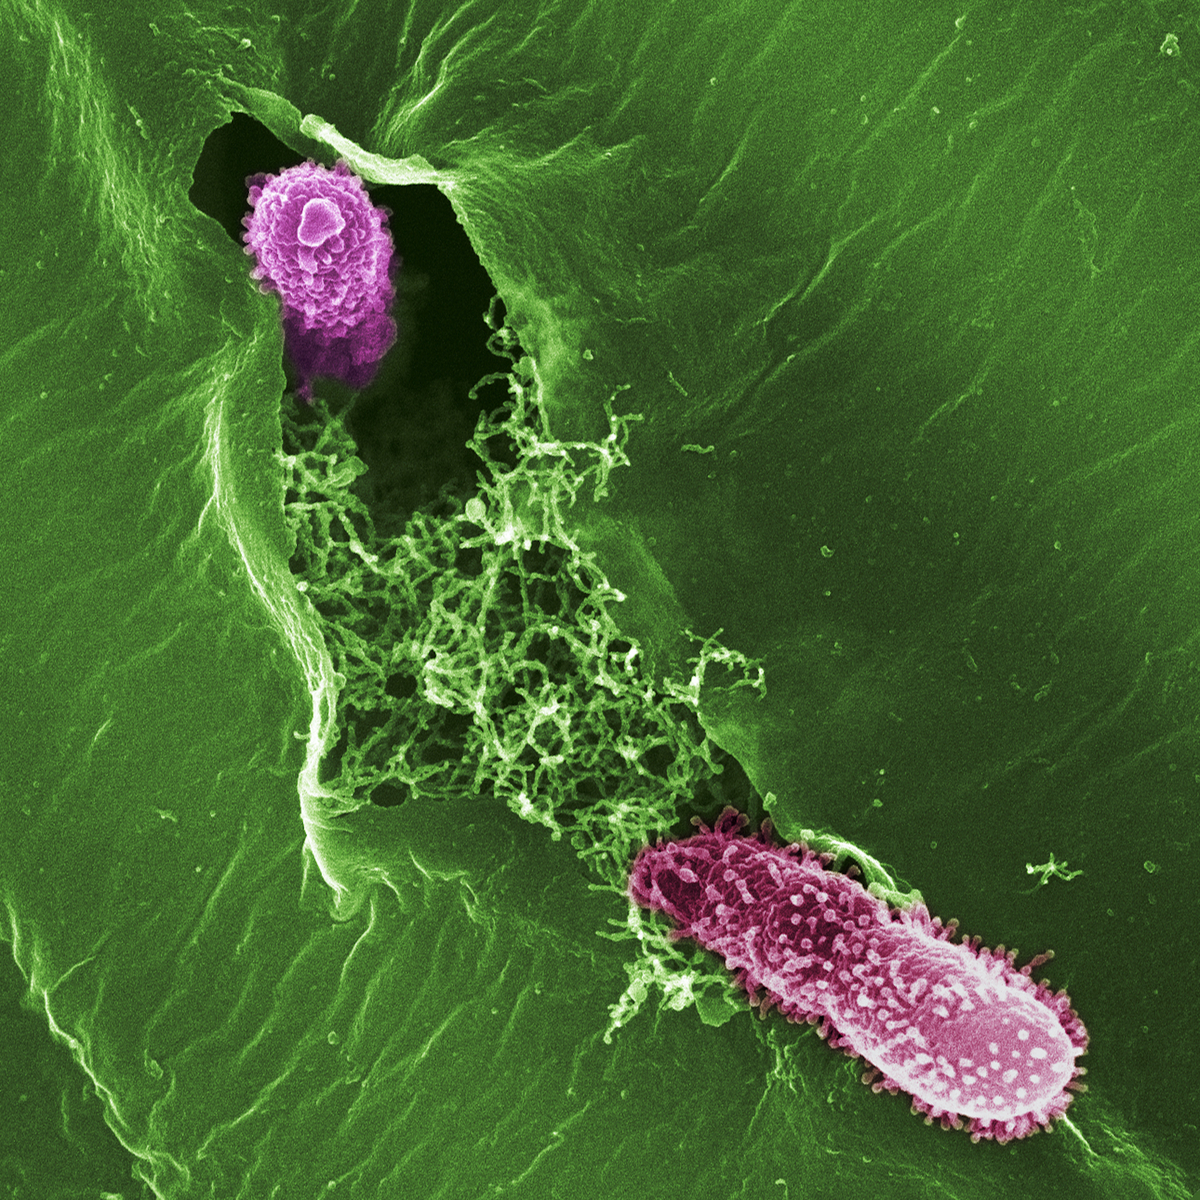 Two Pseudomonas bacteria entering a plant leaf.